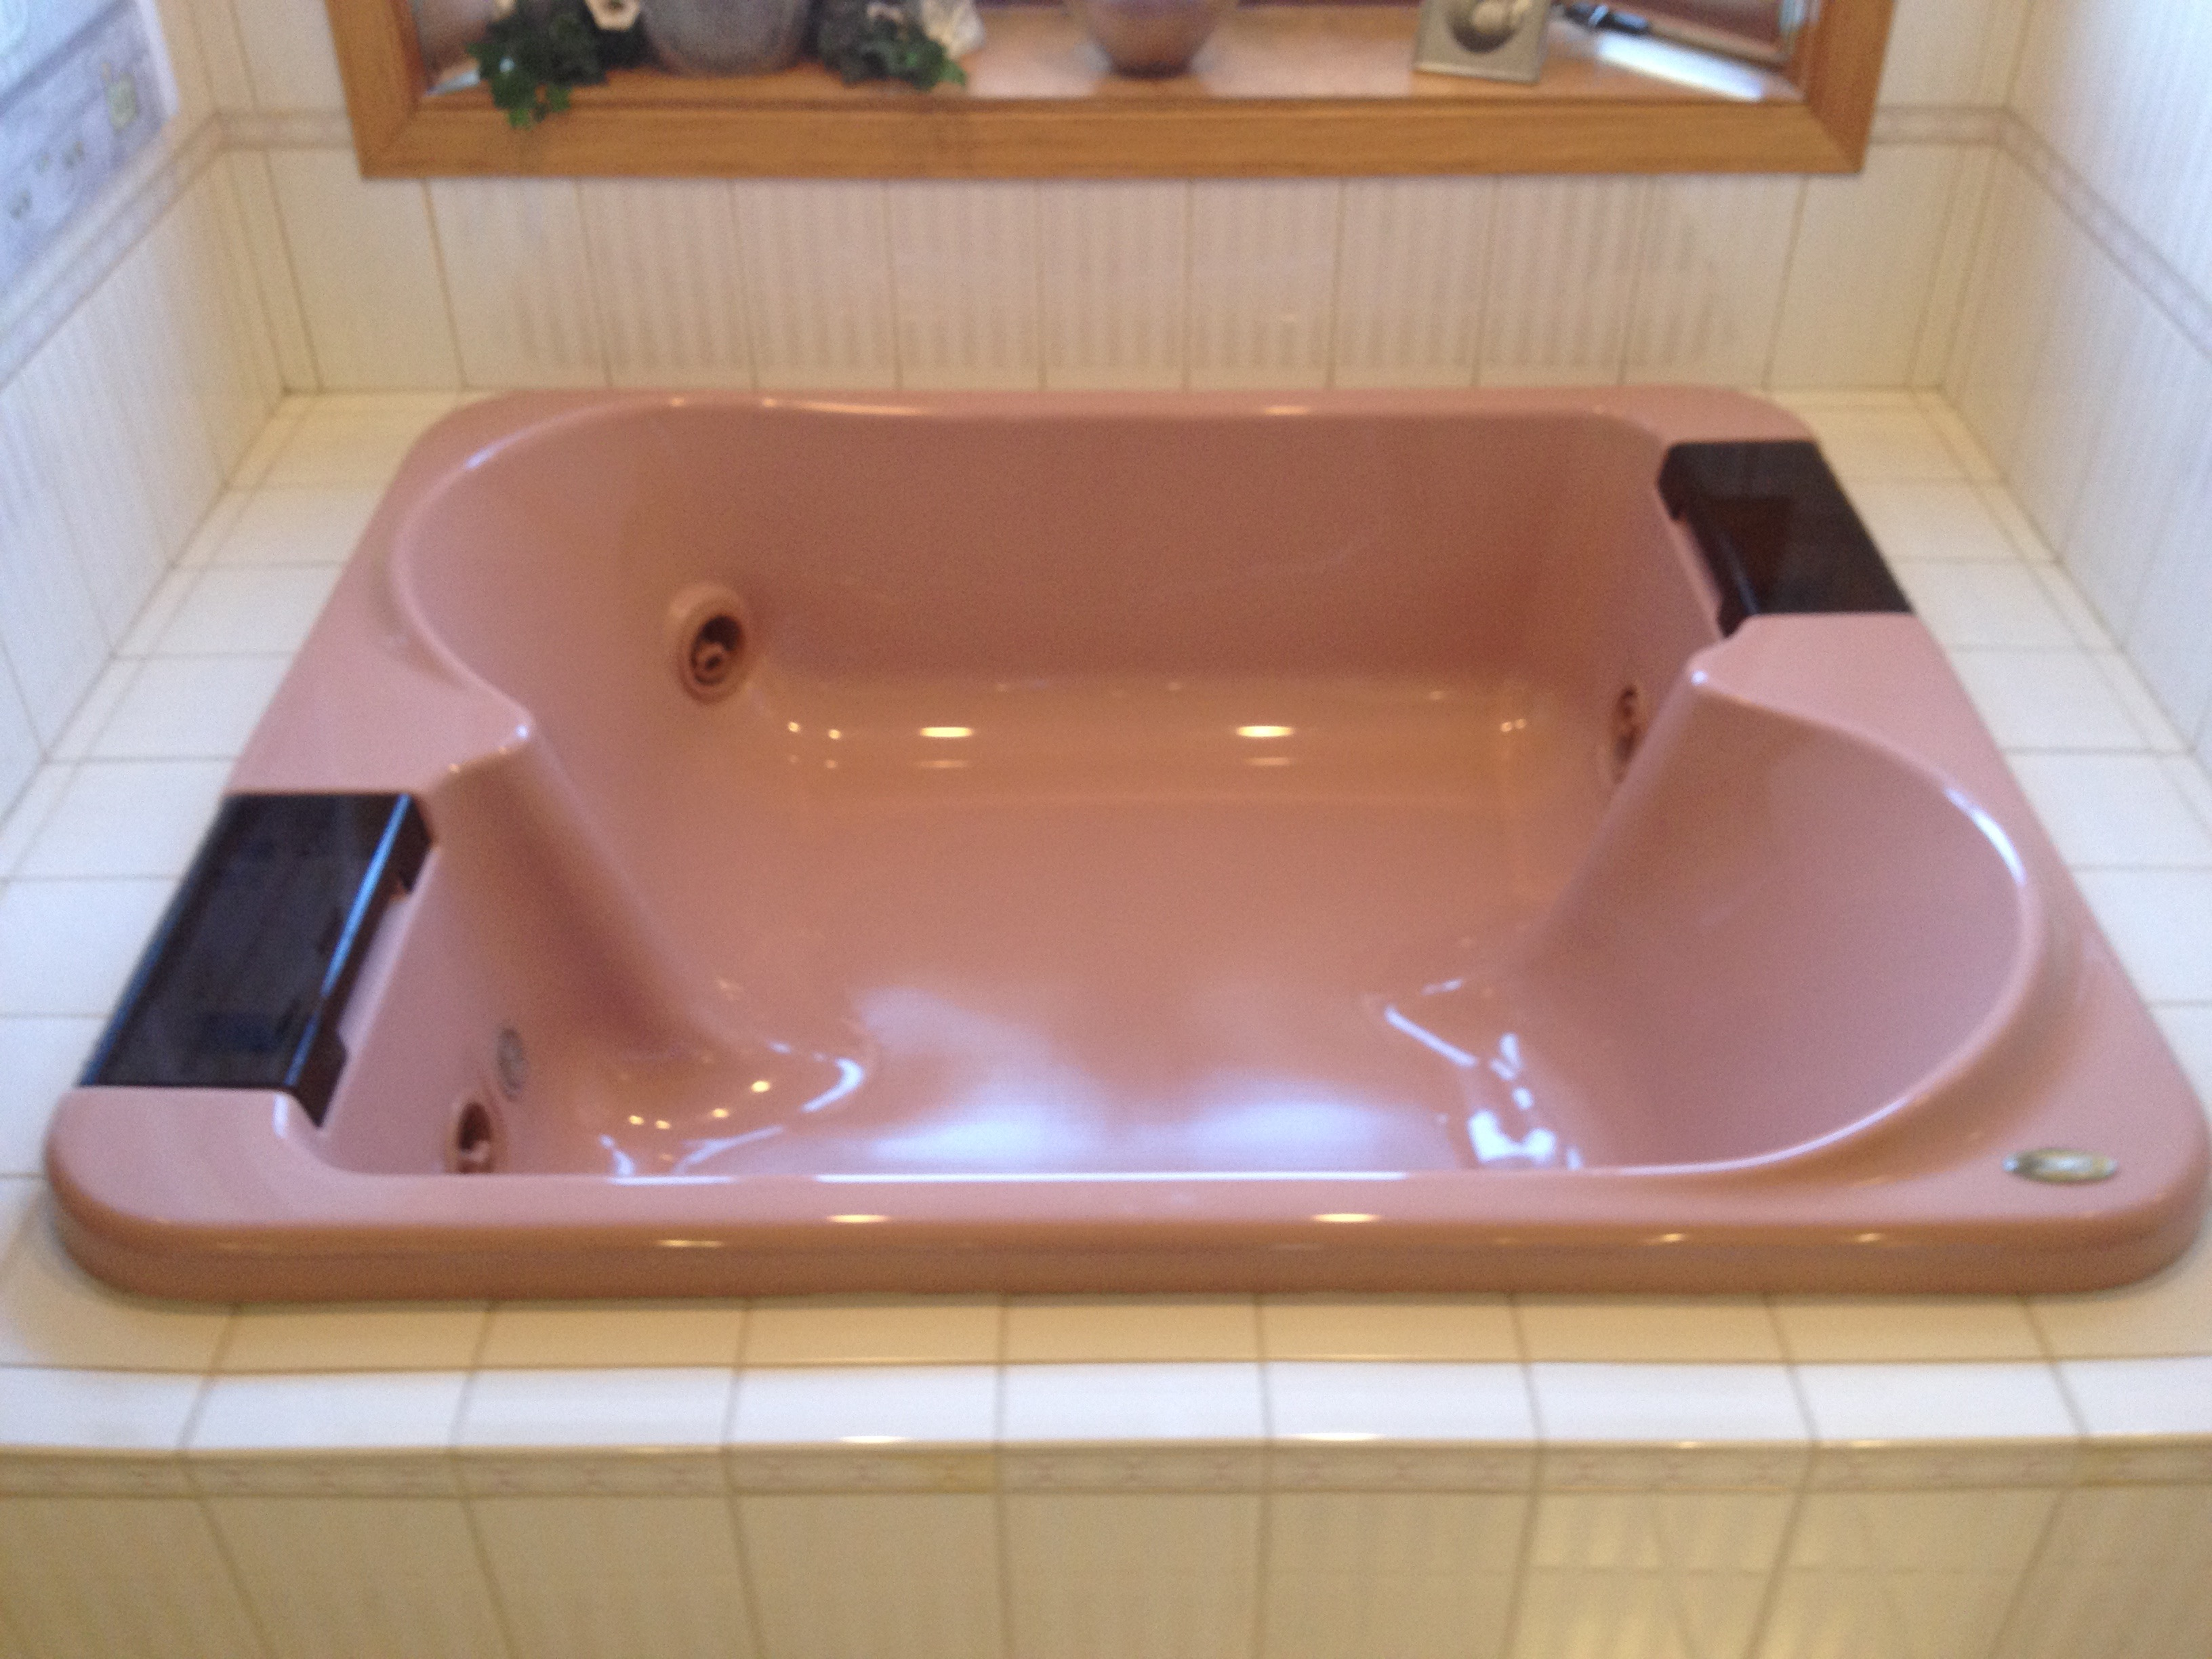 Outdated, rose-colored jacuzzi